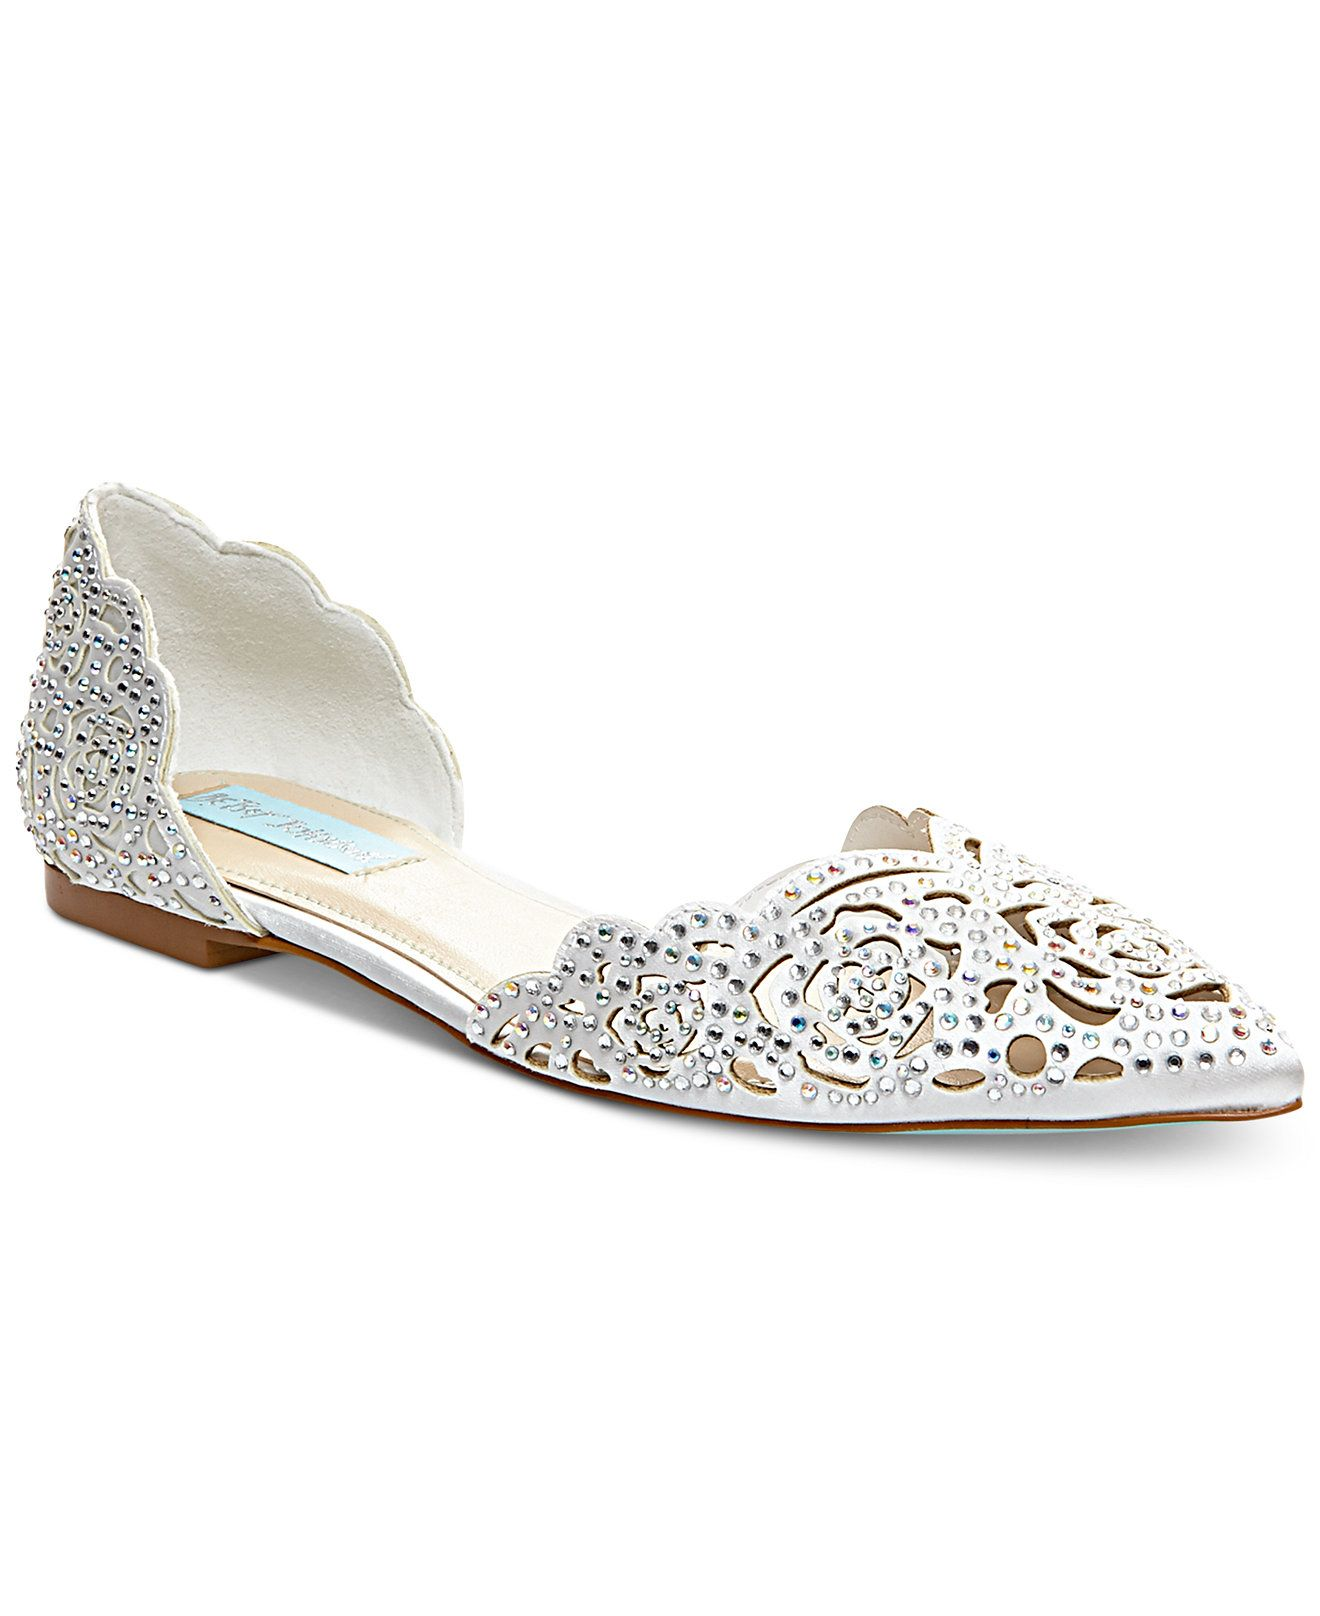 Blue By Betsey Johnson Lucy Embellished Flats Pumps Shoes